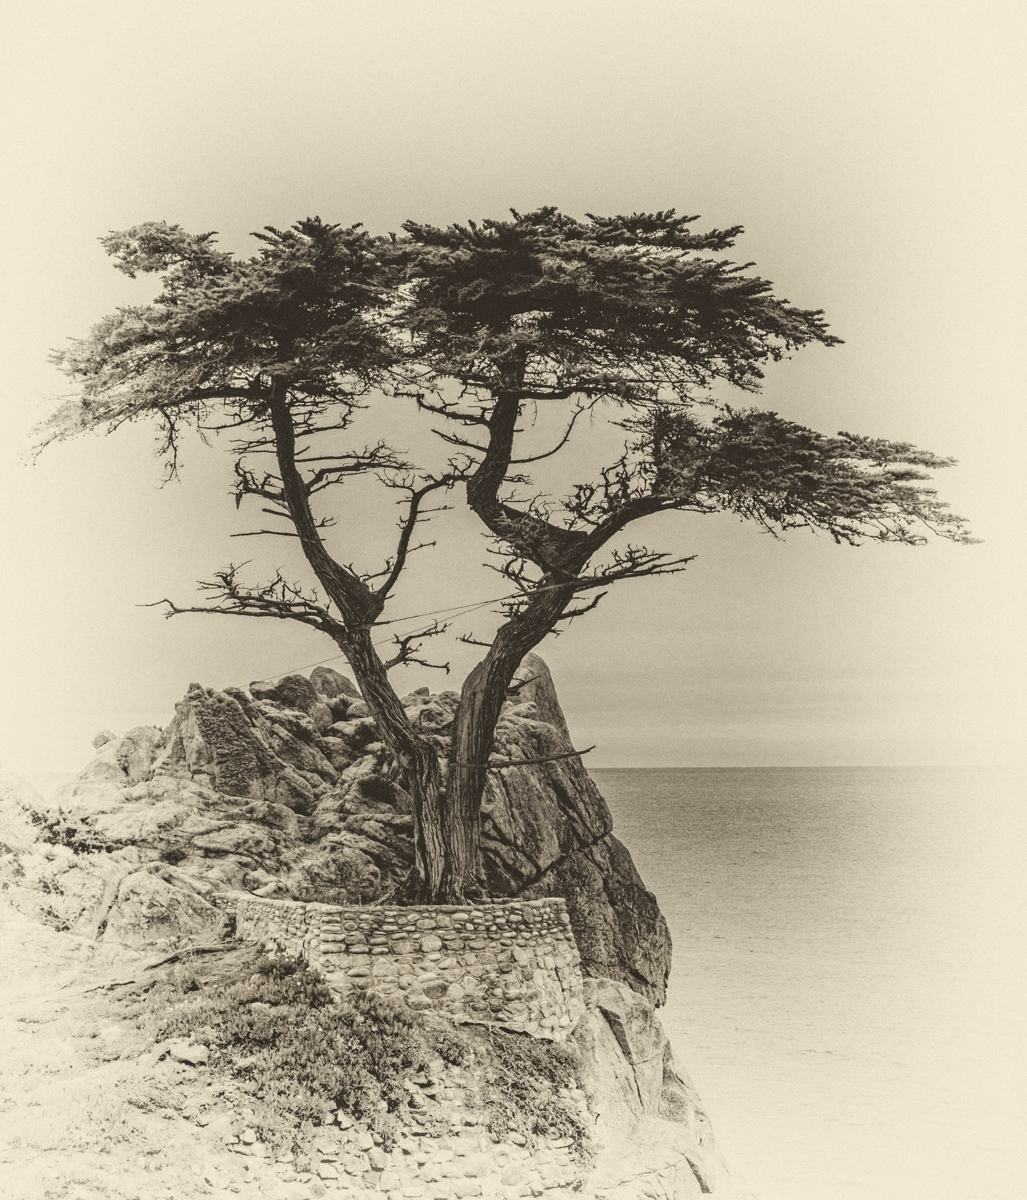 'The Lone Cypress' (PI 1 Place) by Michael Funk - SR